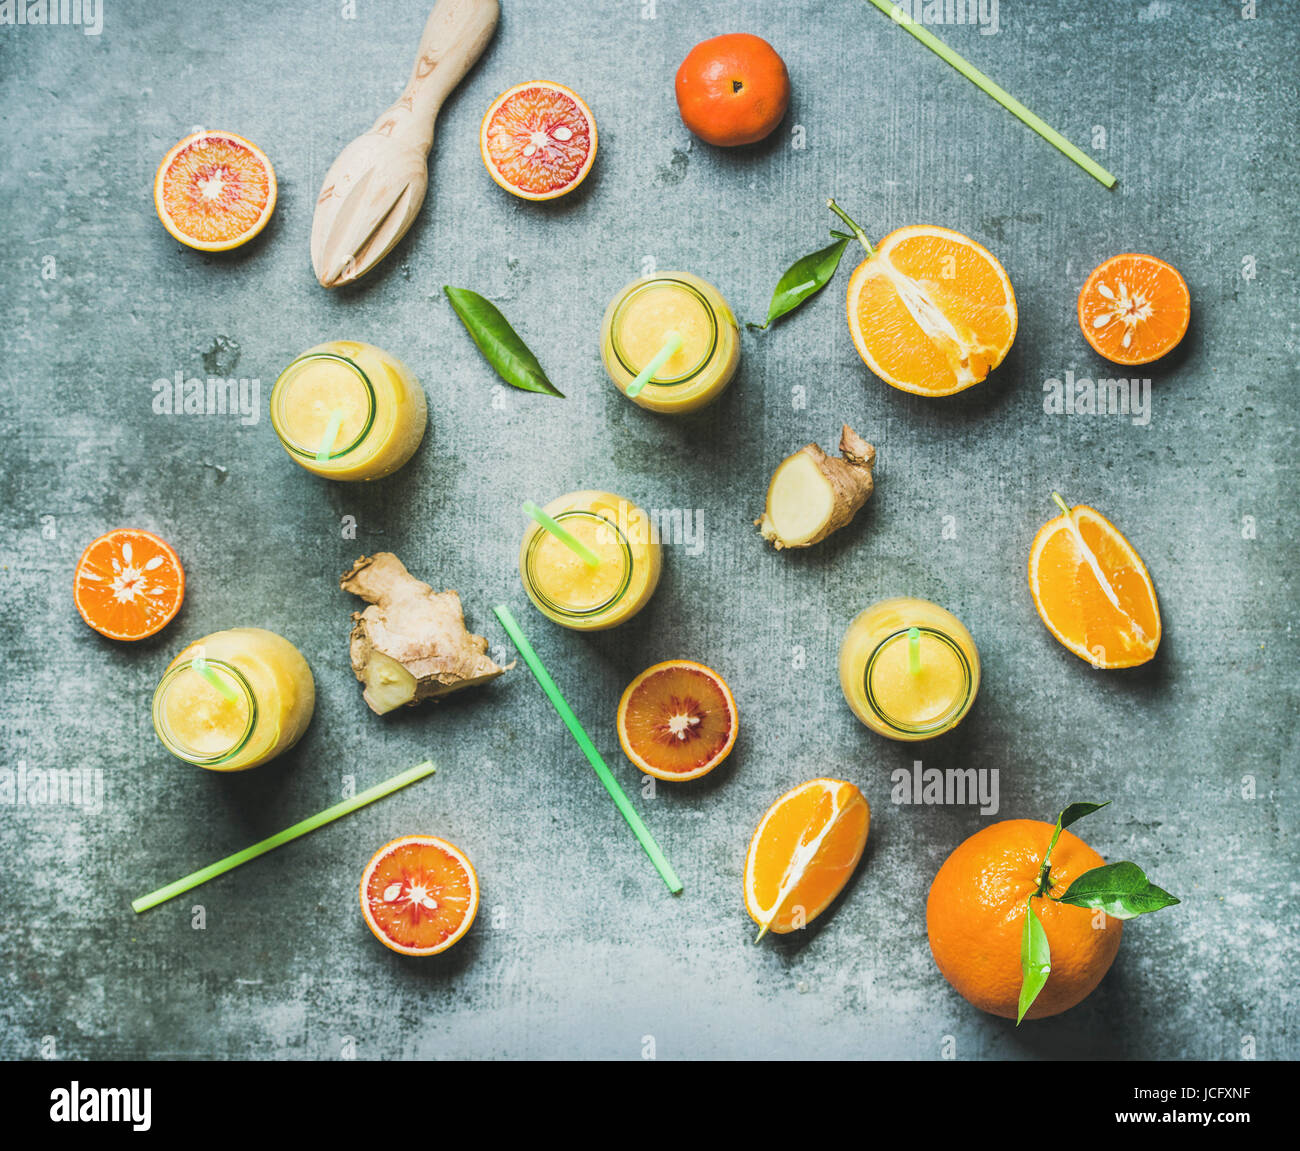 Healthy yellow smoothie with citrus fruit and ginger in bottles over grey concrete background, top view. Clean eating, - Stock Image